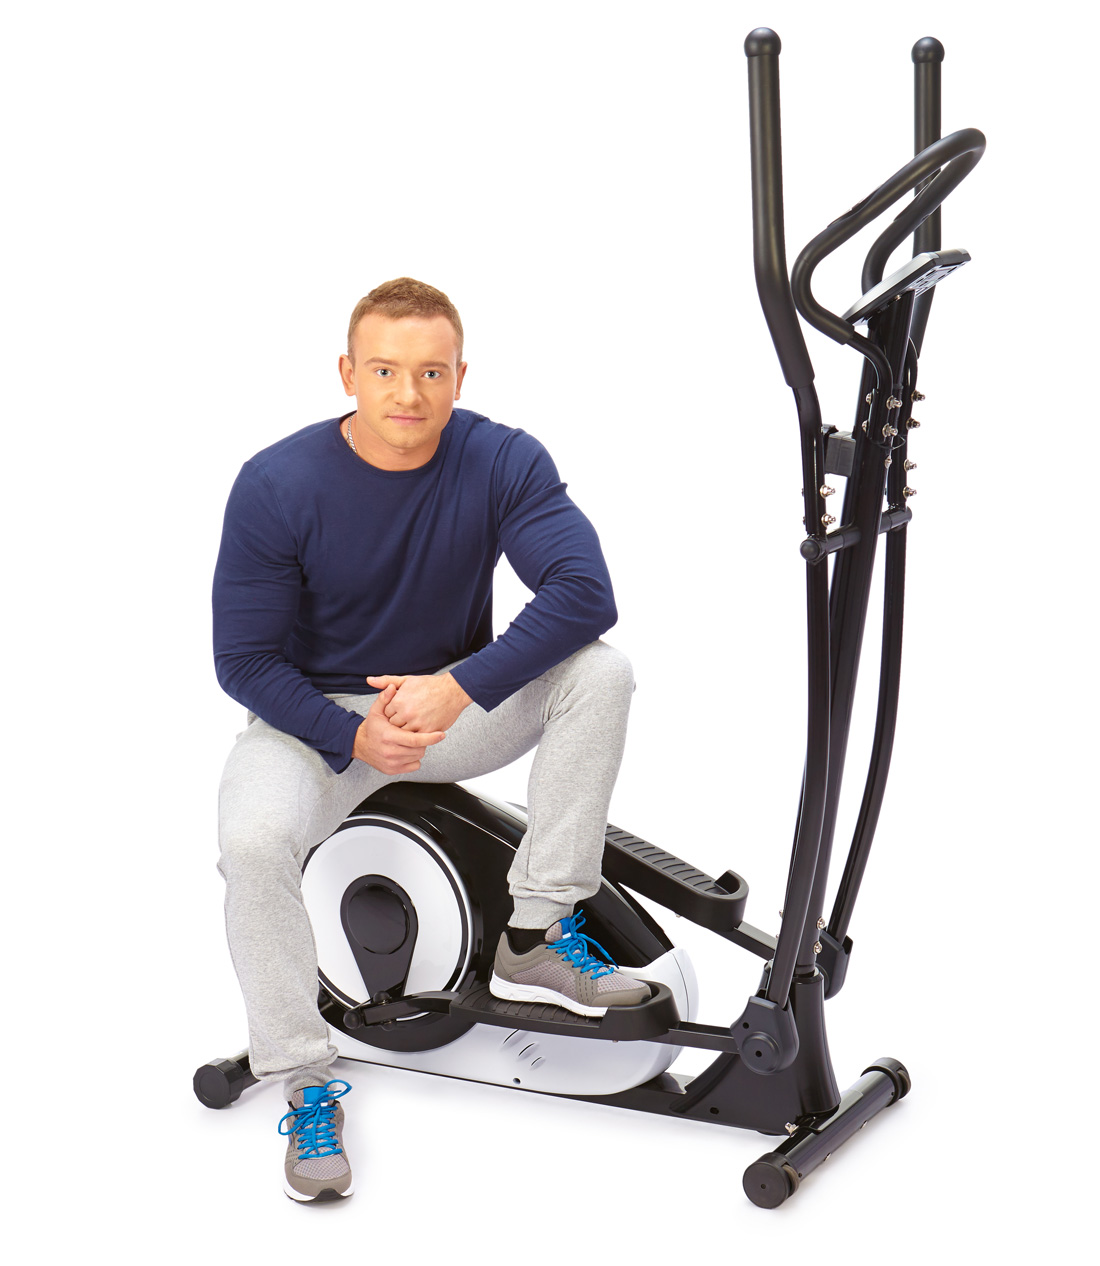 Best Rated Elliptical Machines For Home Use